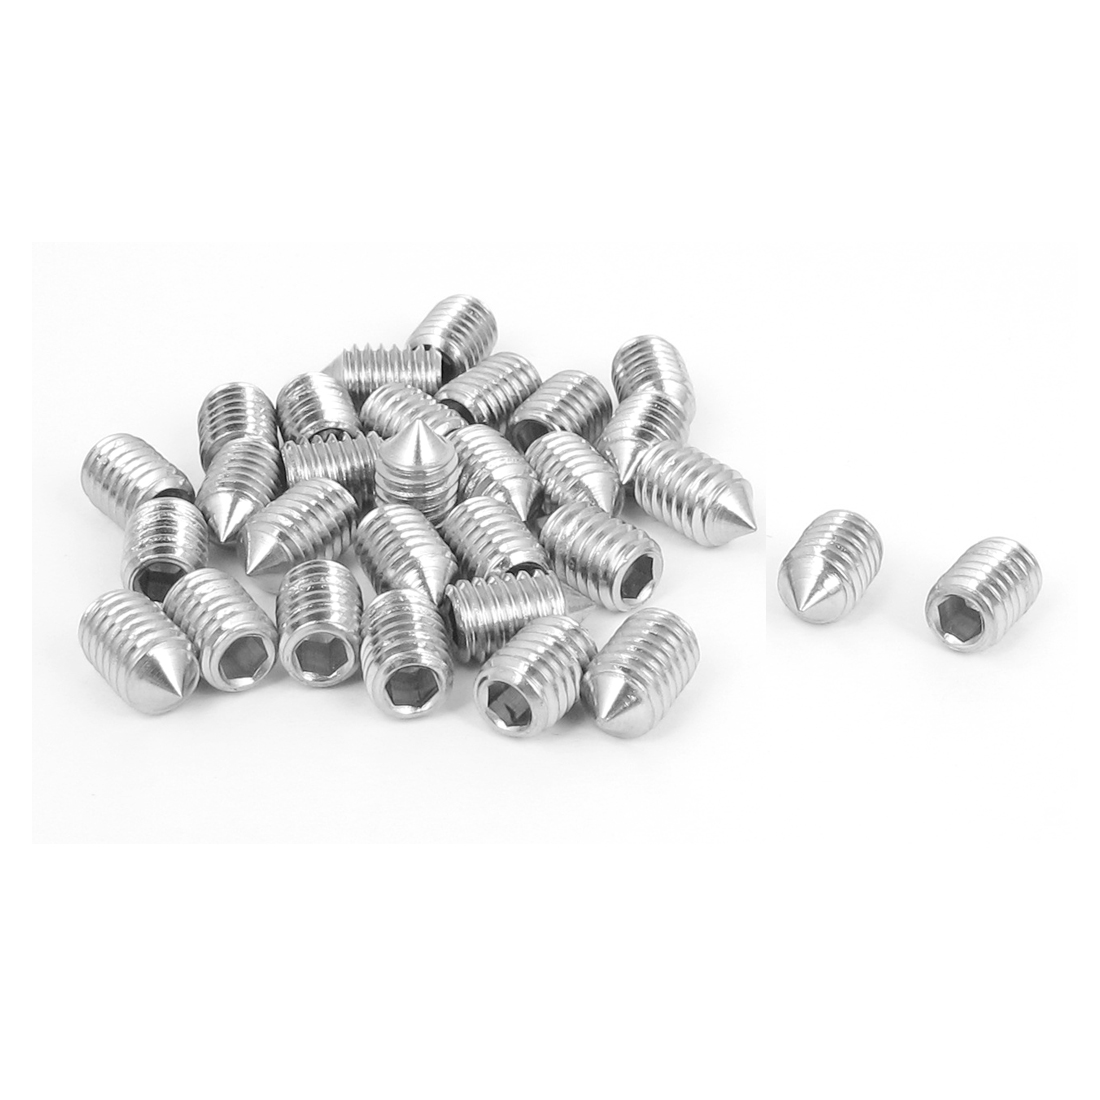 M6x10mm 304 Stainless Steel Cone Point Hexagon Socket Grub Screws 30pcs